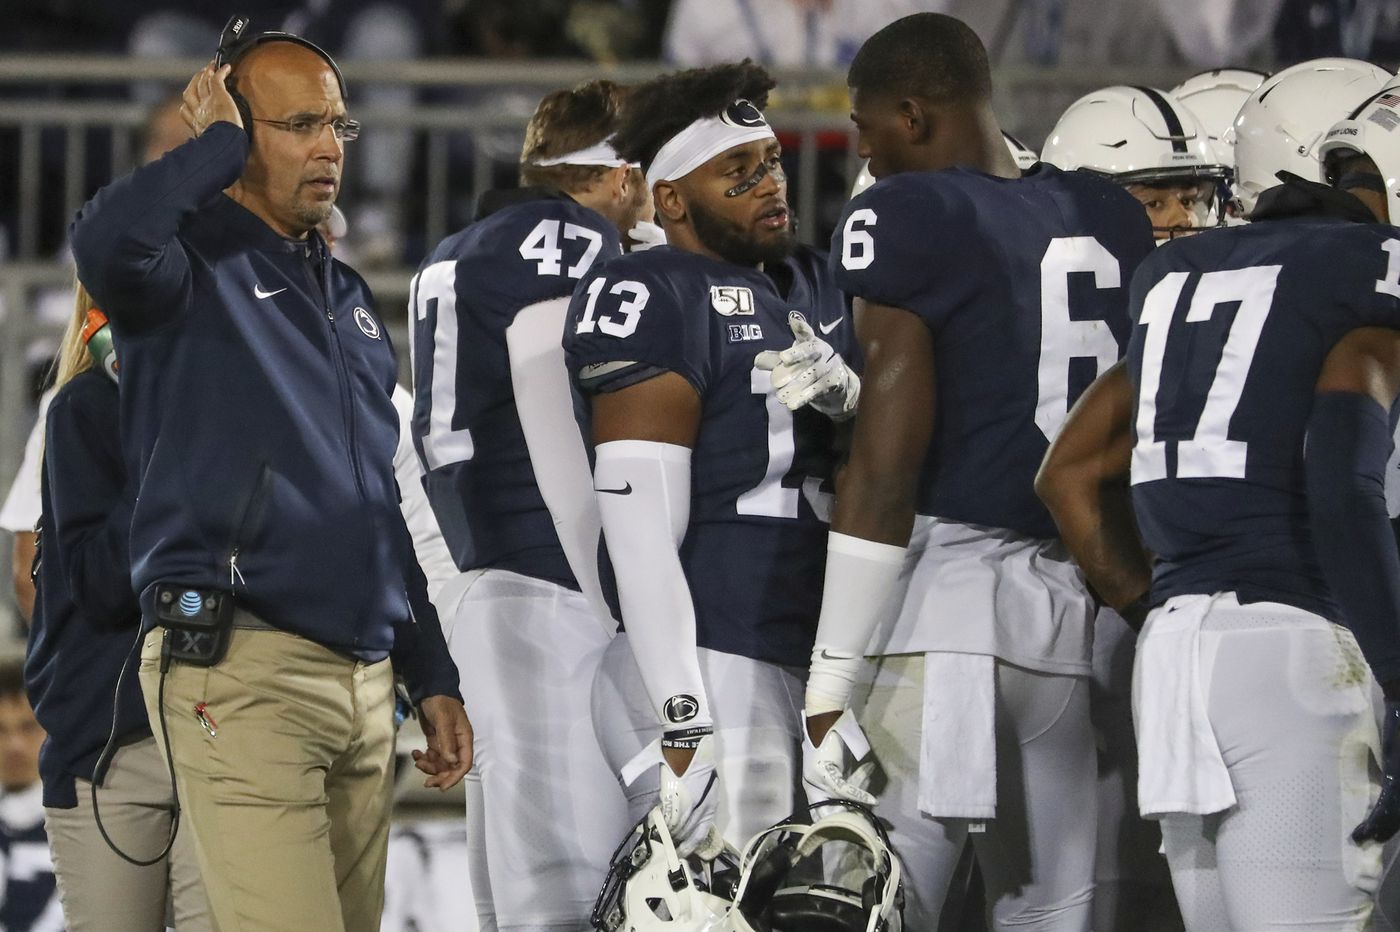 Coach James Franklin is satisfied with the Big Ten football decision, but more challenges await Penn State